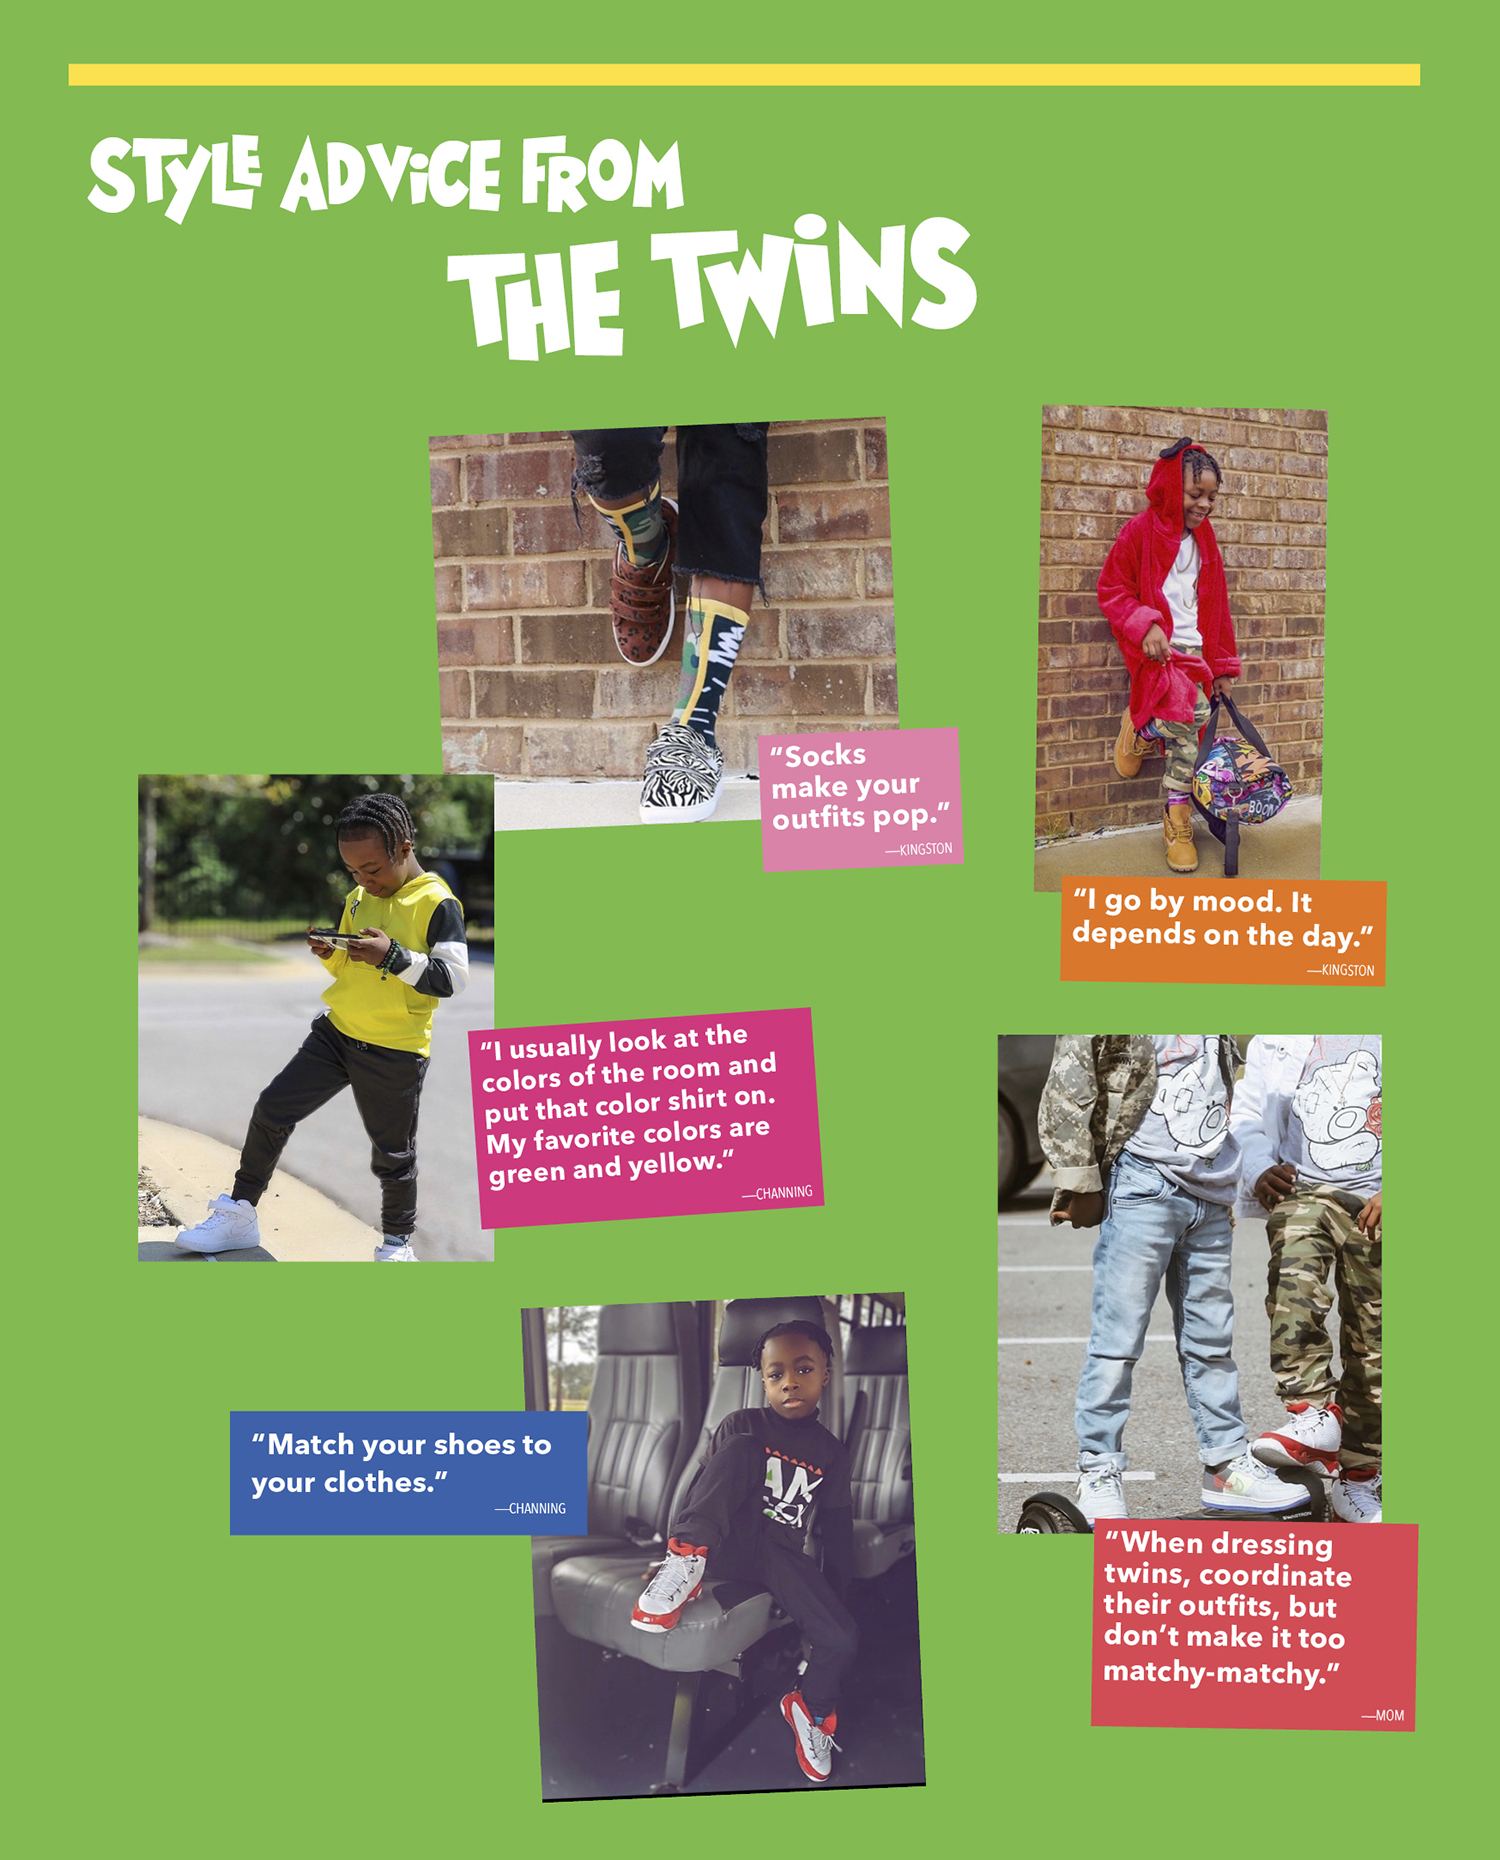 Style advice from the Twins, collage of photos of the twins fashion advice